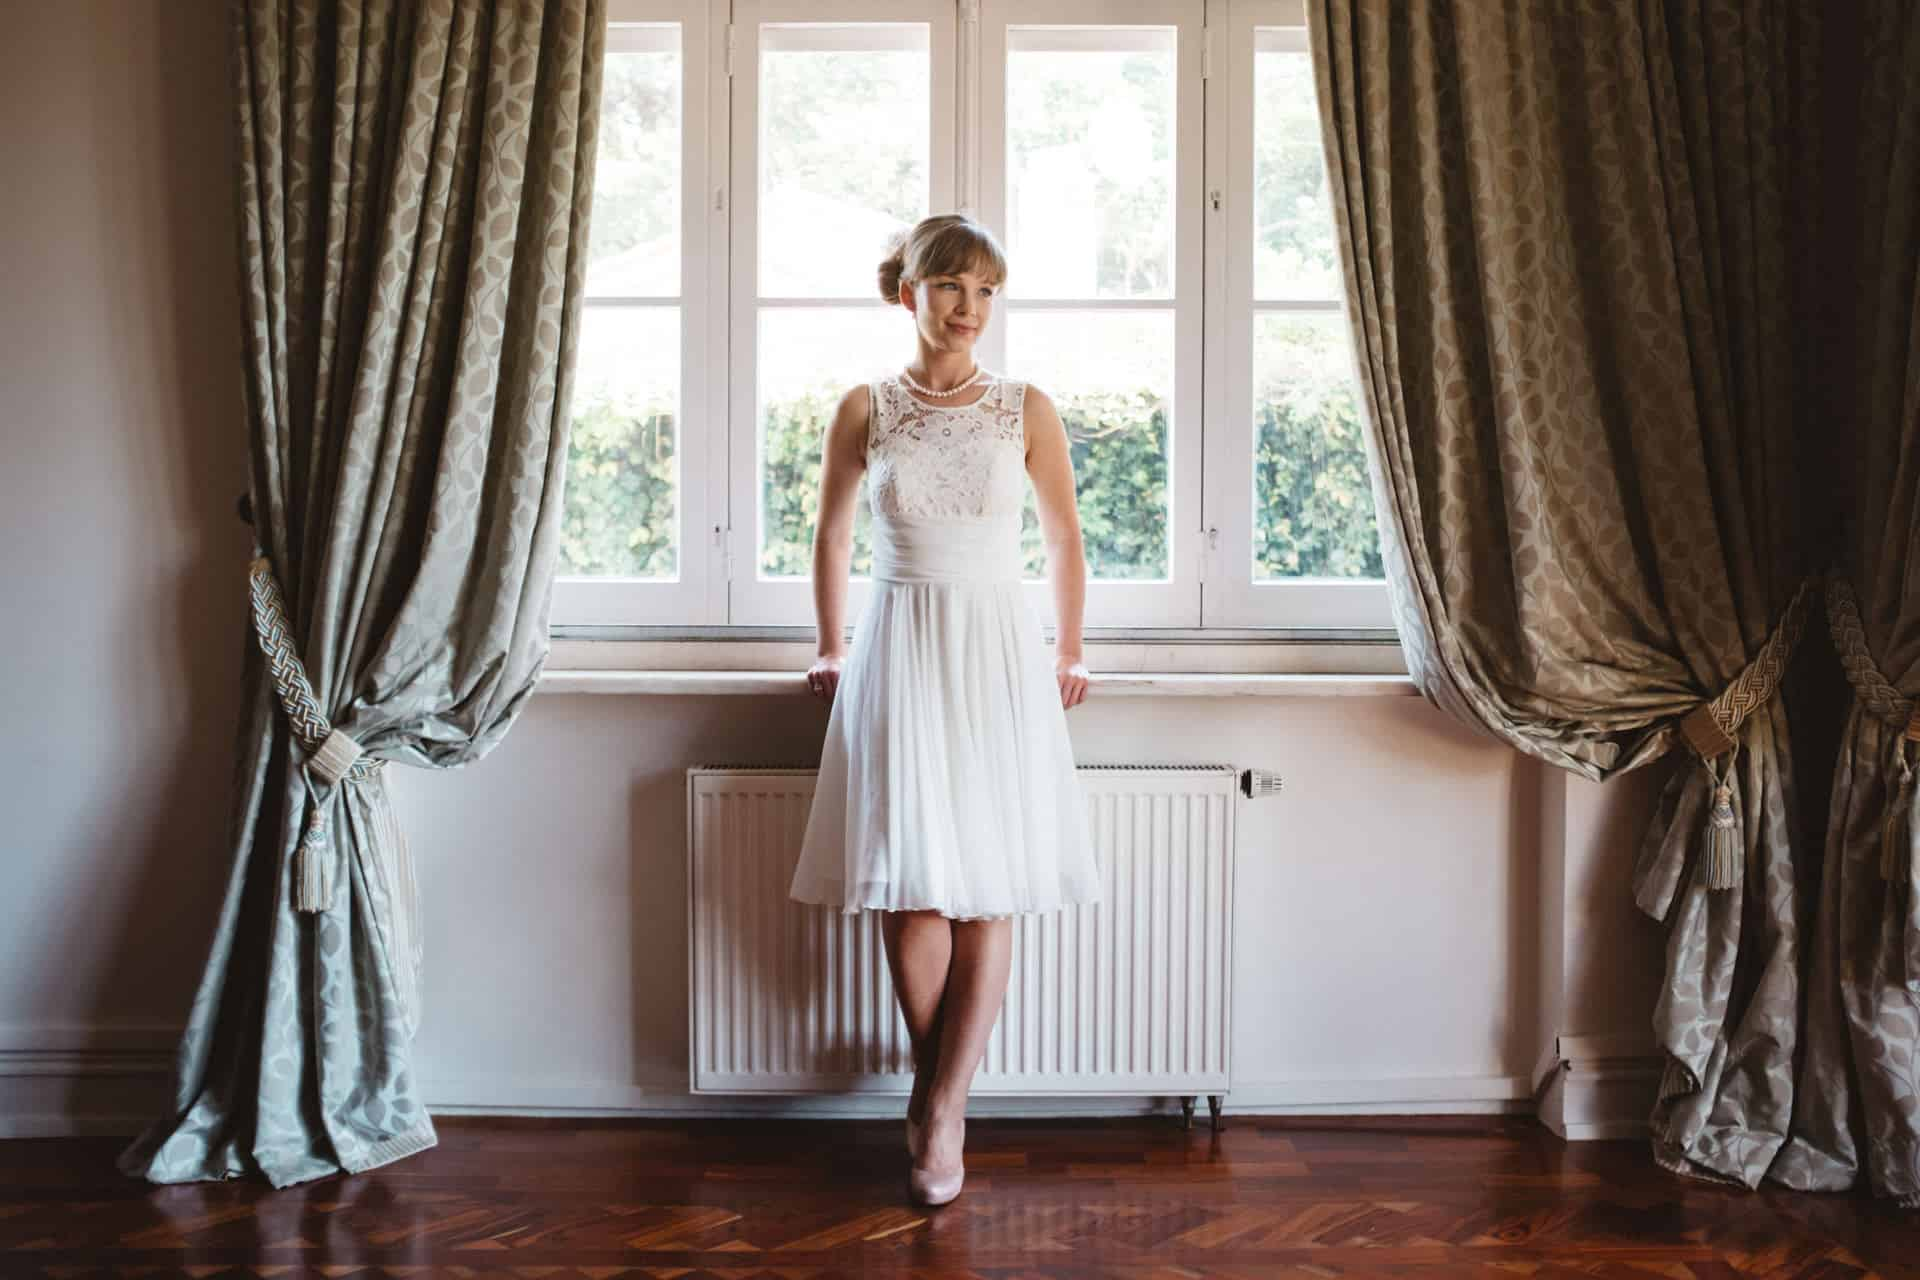 Best wedding images of the year (206 of 316)